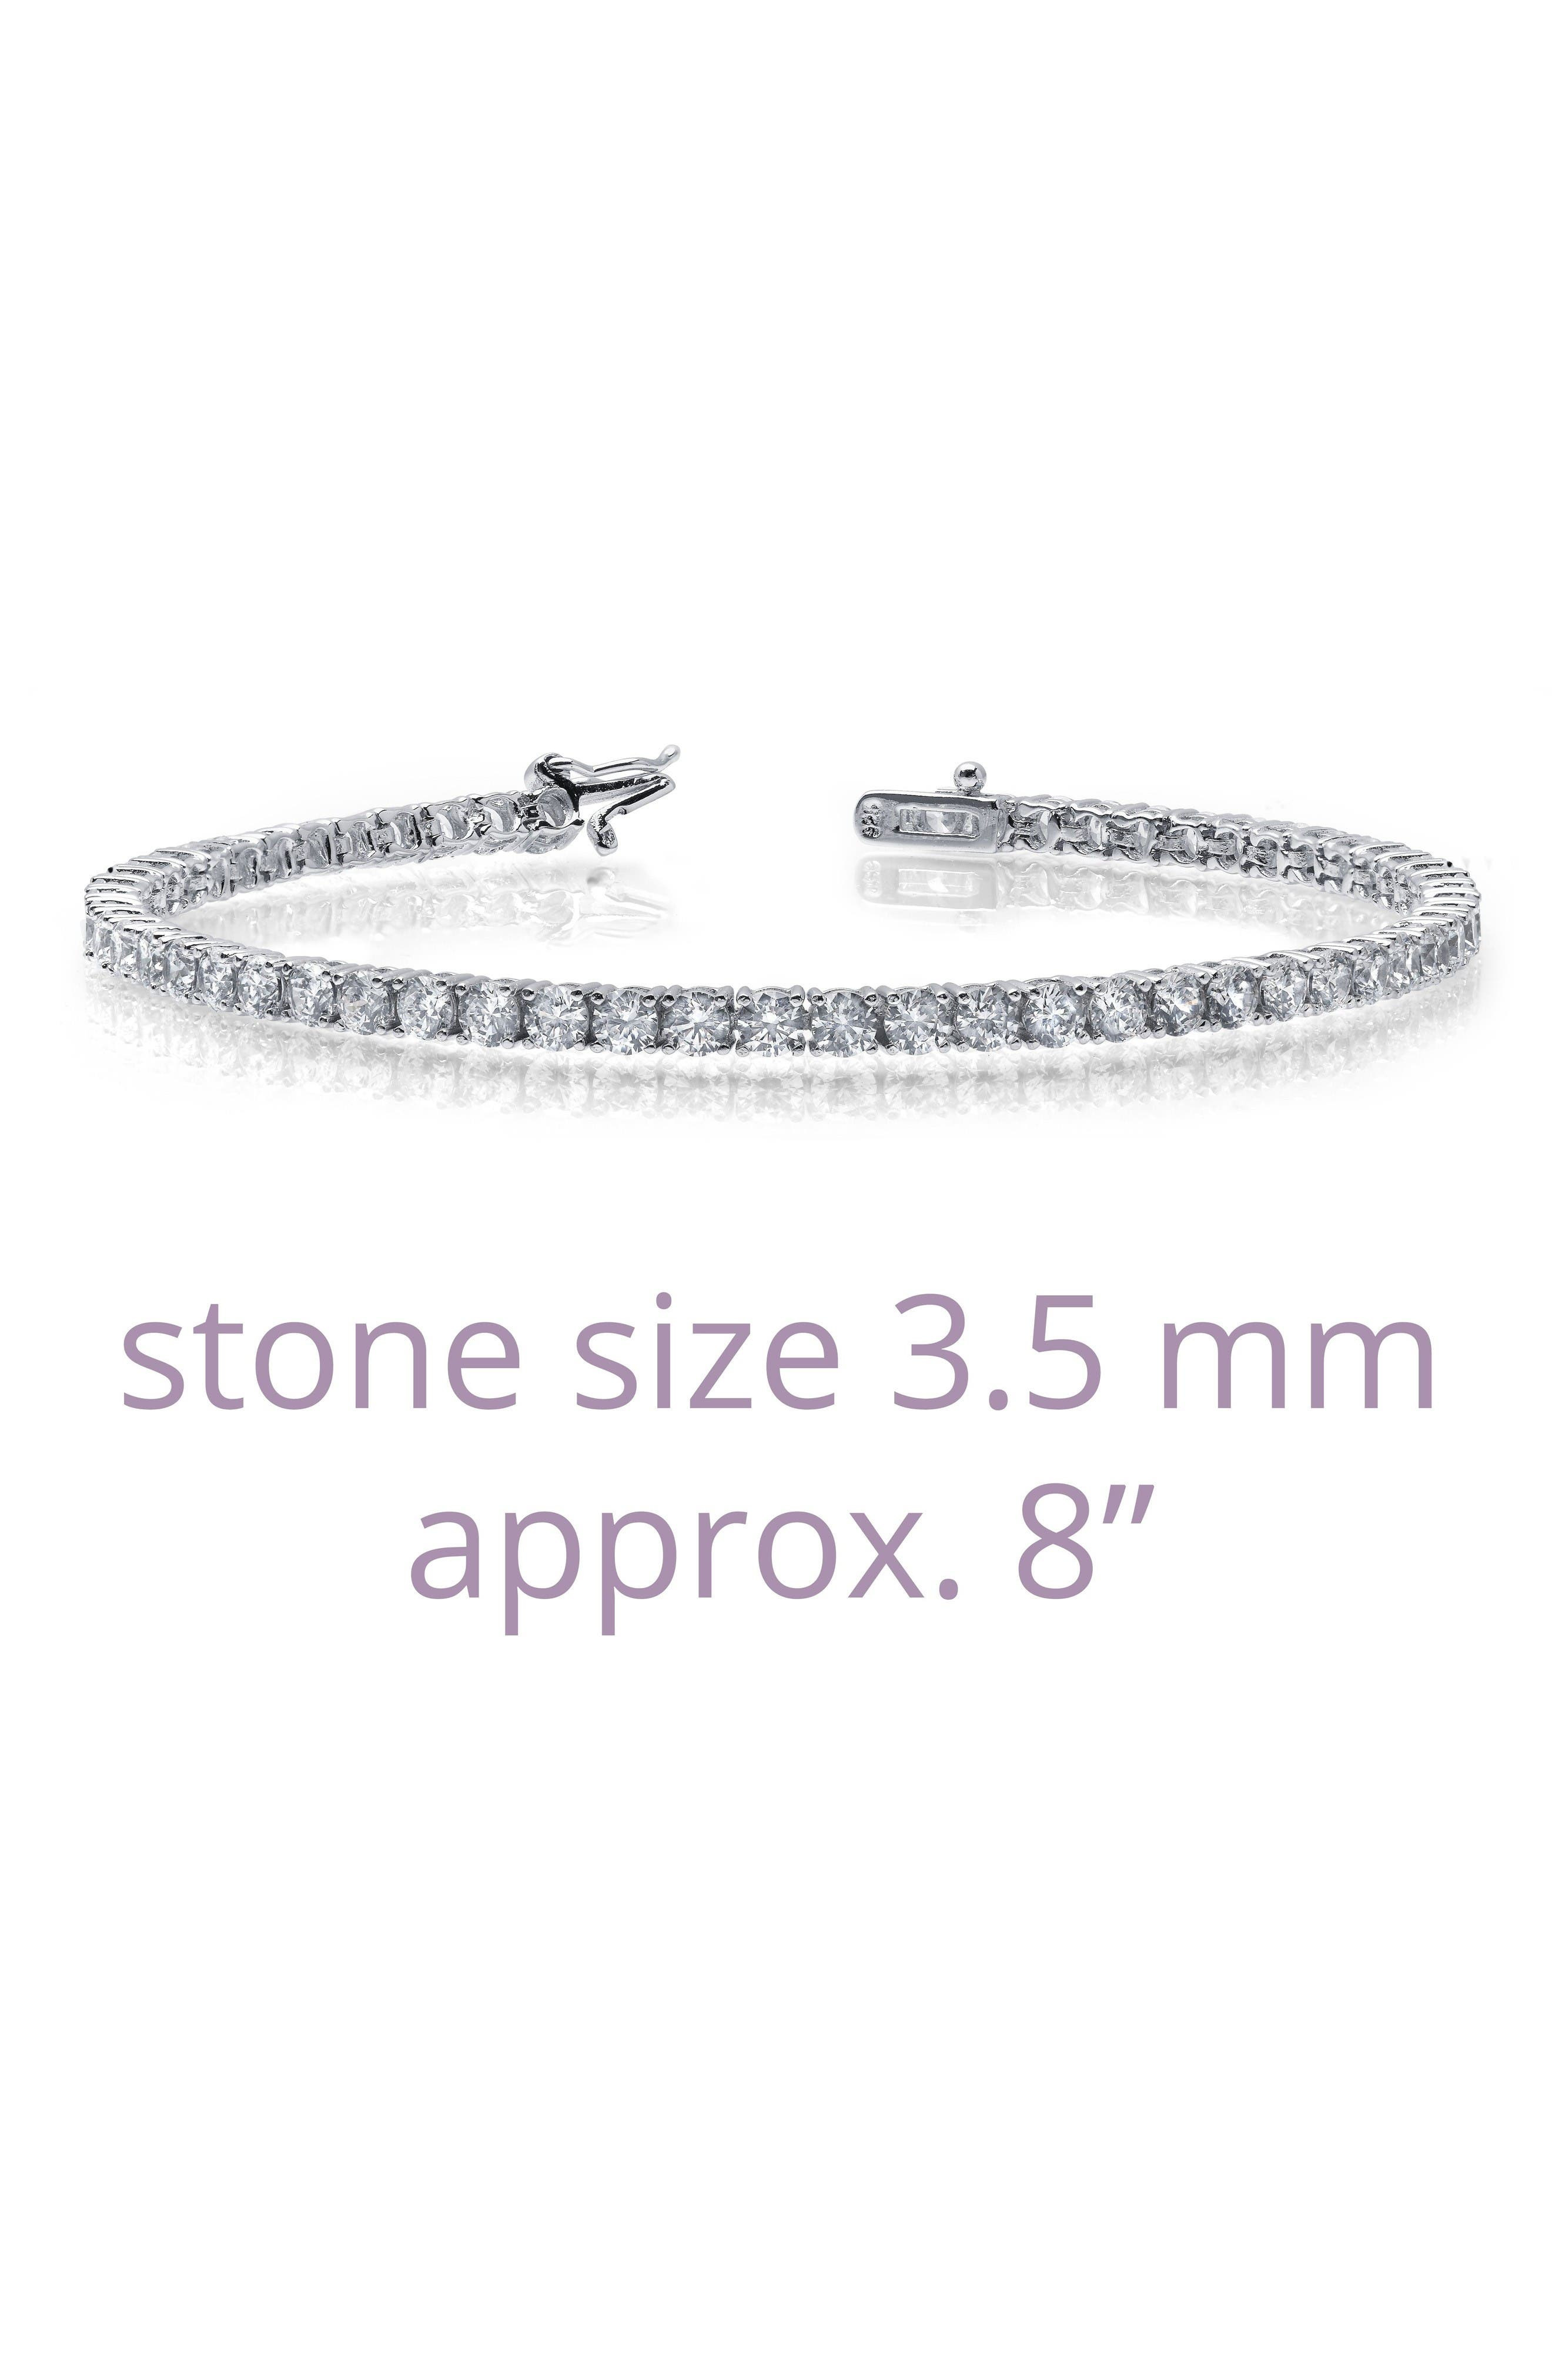 Classic Simulated Diamond Tennis Bracelet,                             Alternate thumbnail 4, color,                             Silver